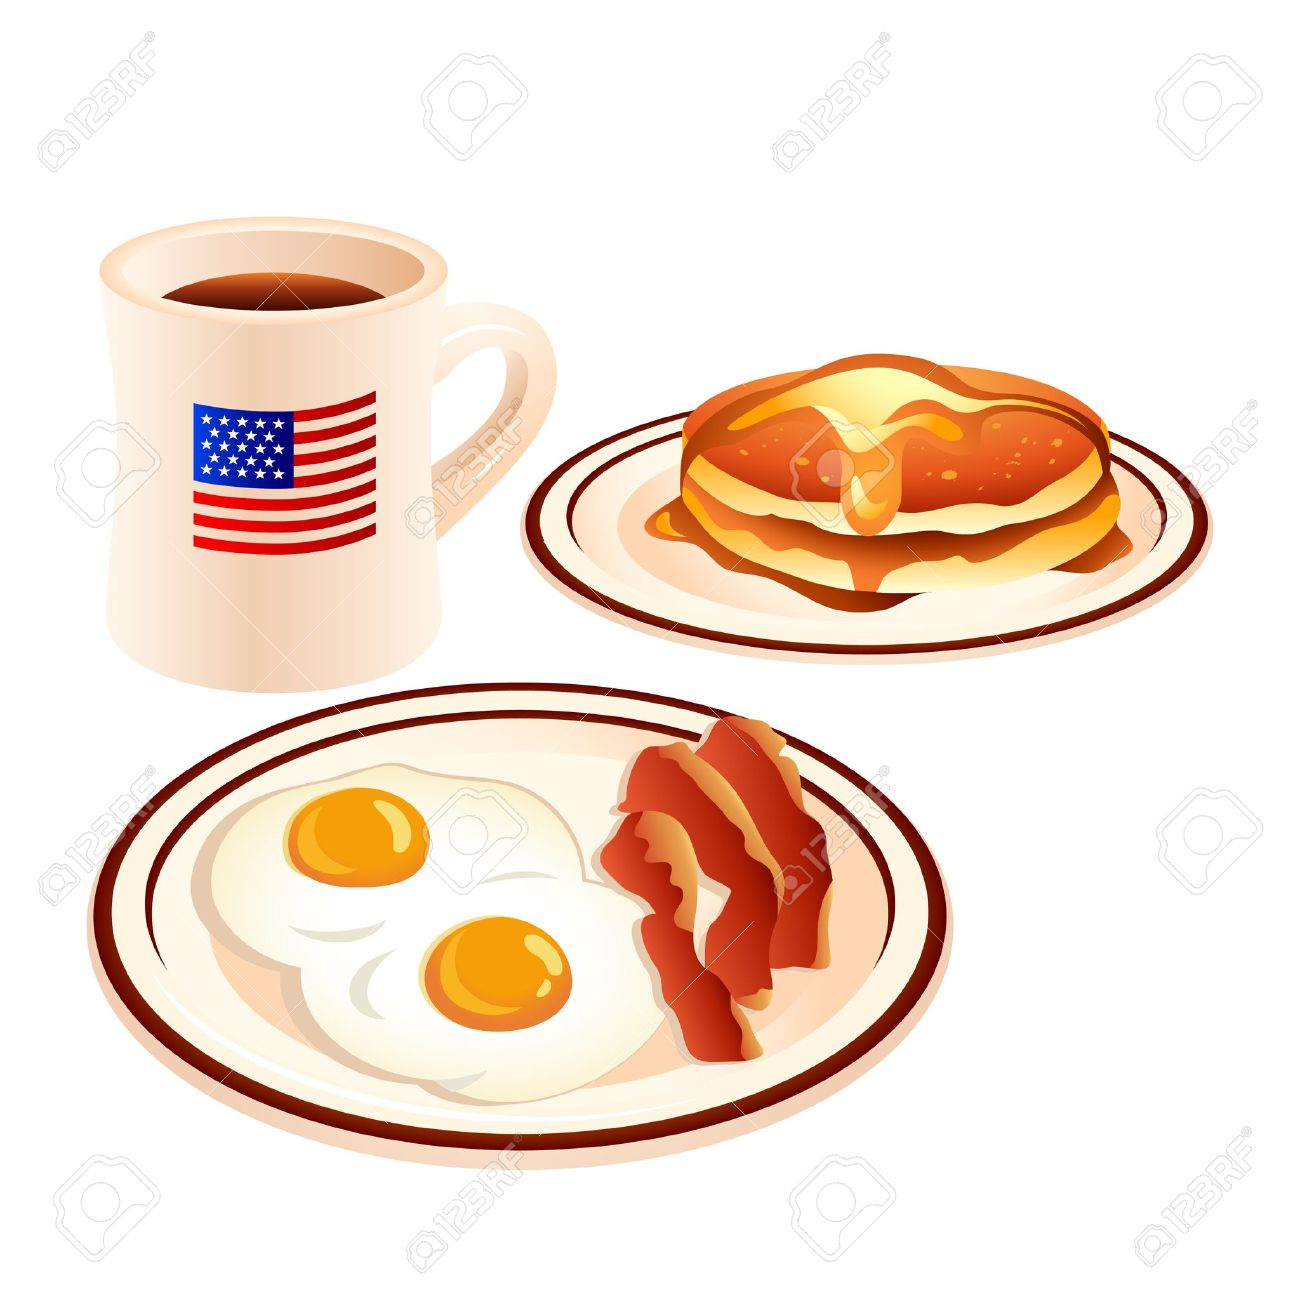 Pancakes And Sausage Clipart